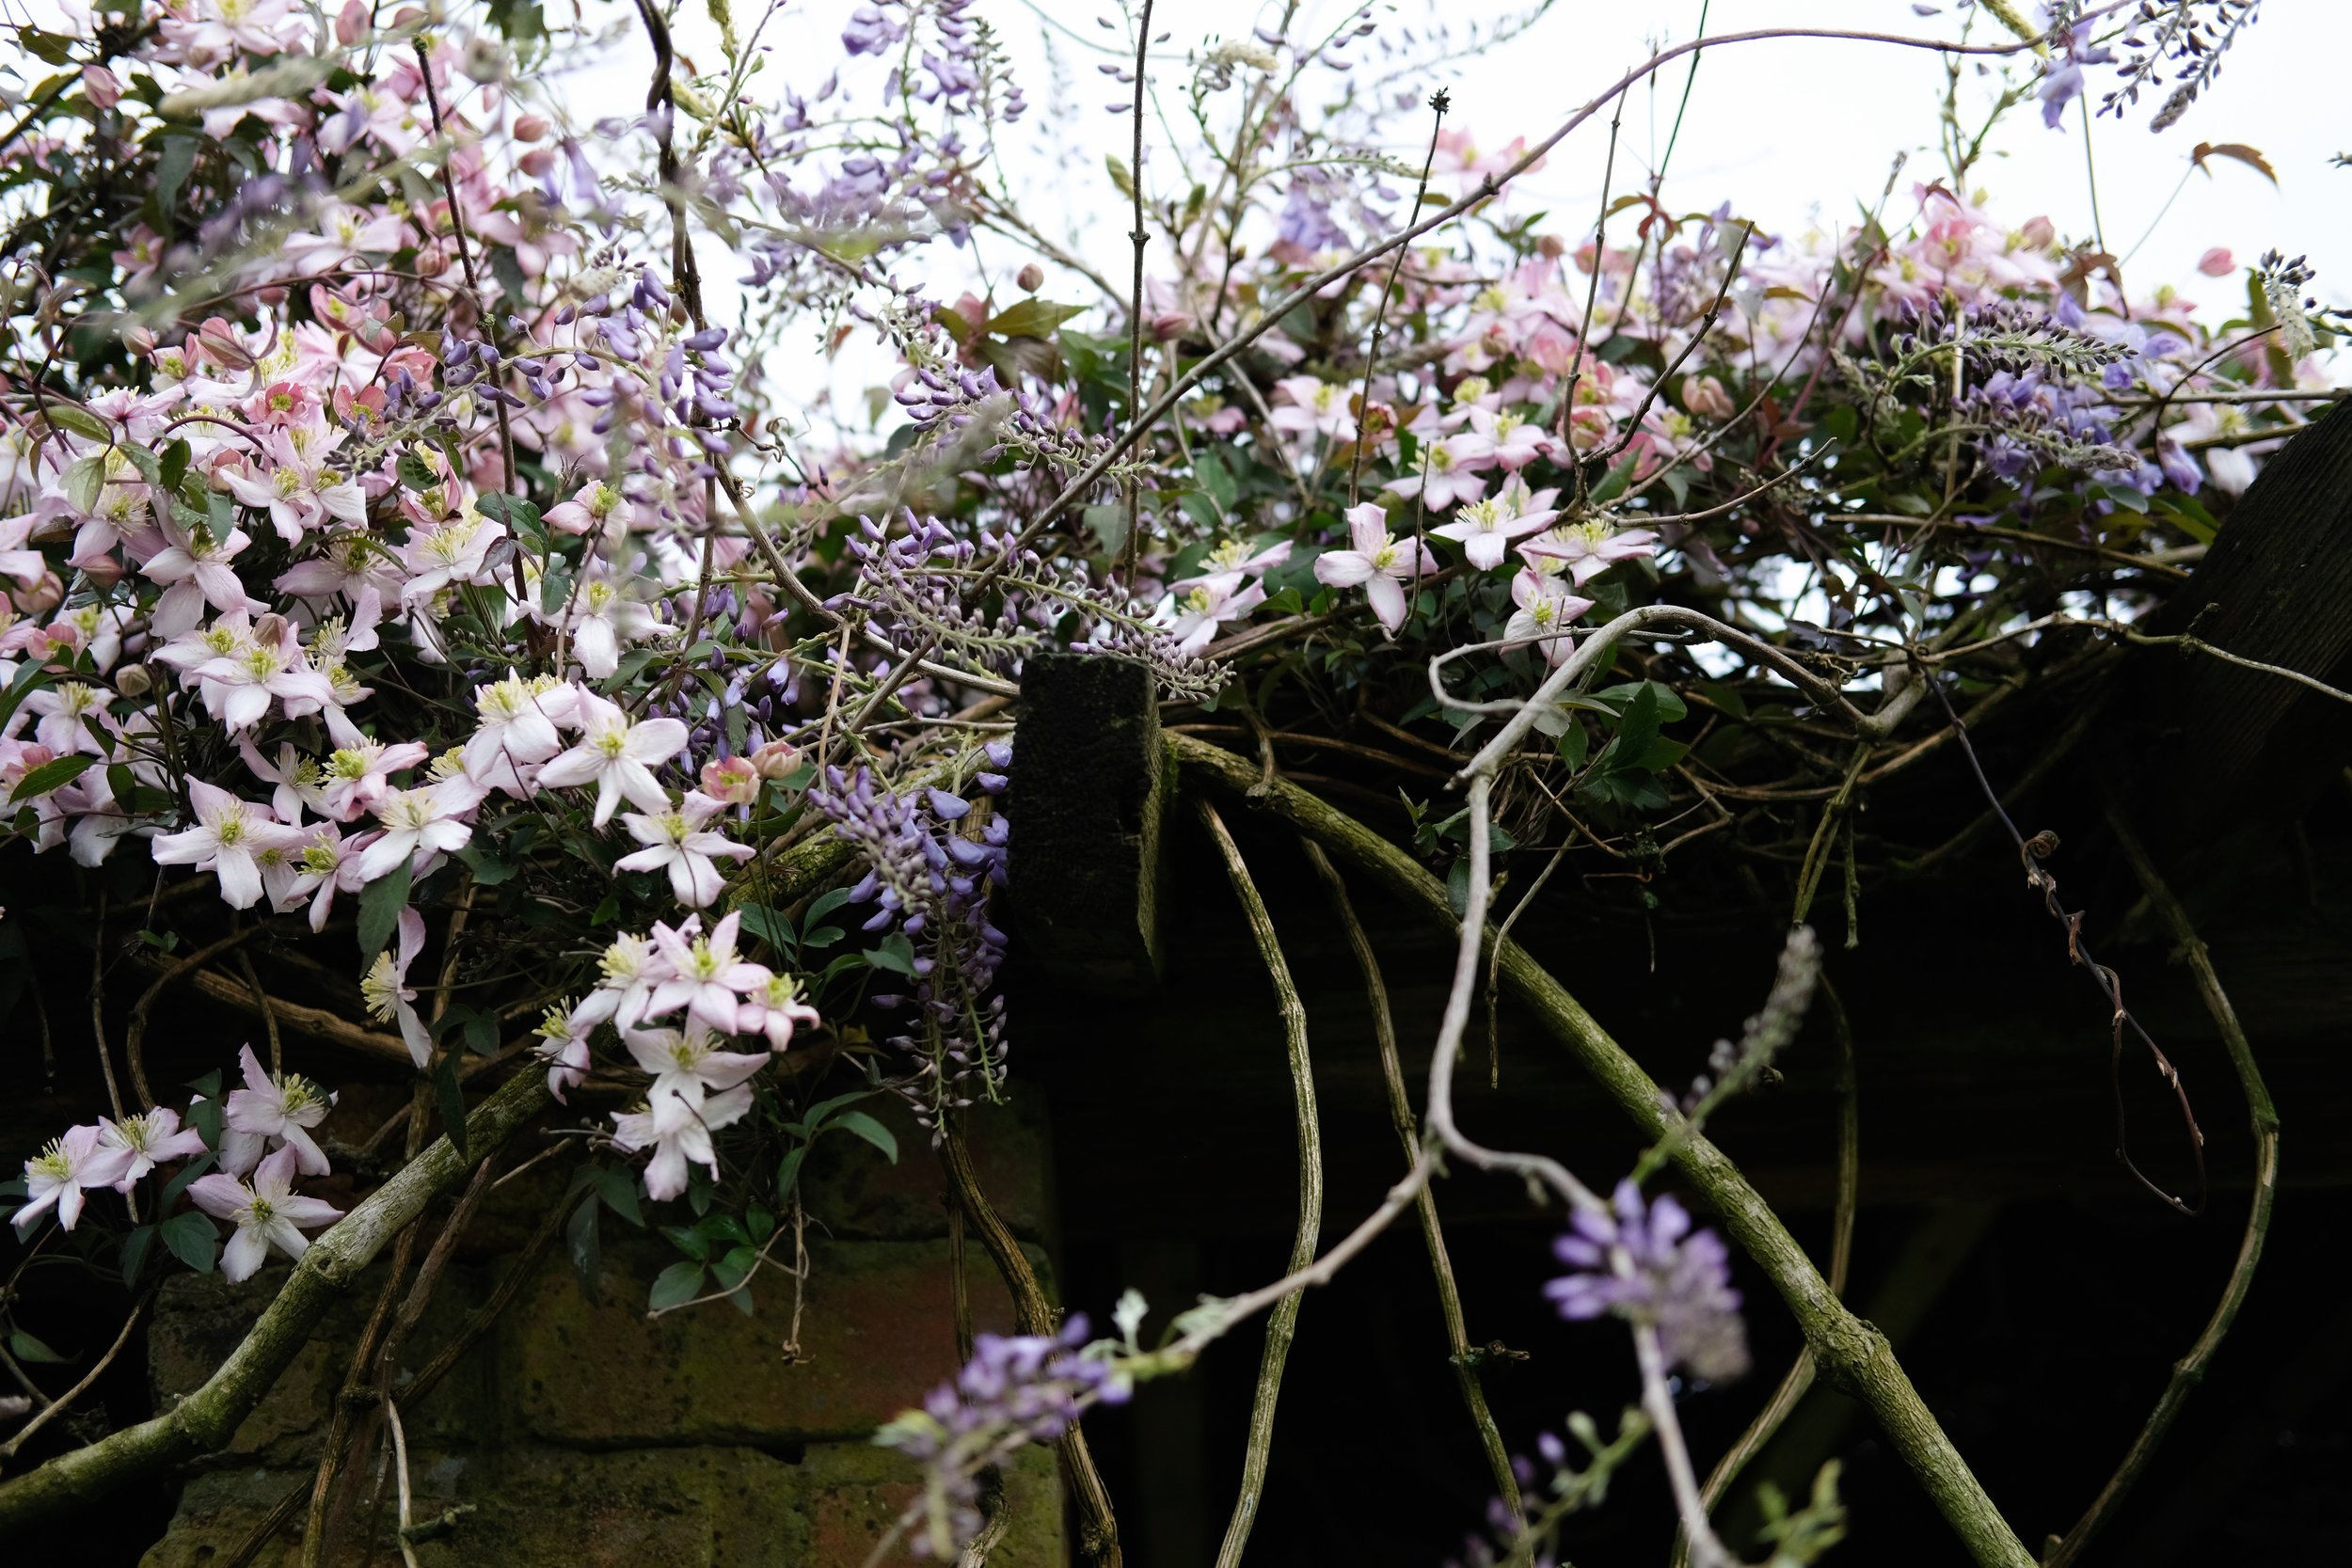 Clematis and Wisteria | Field + Nest